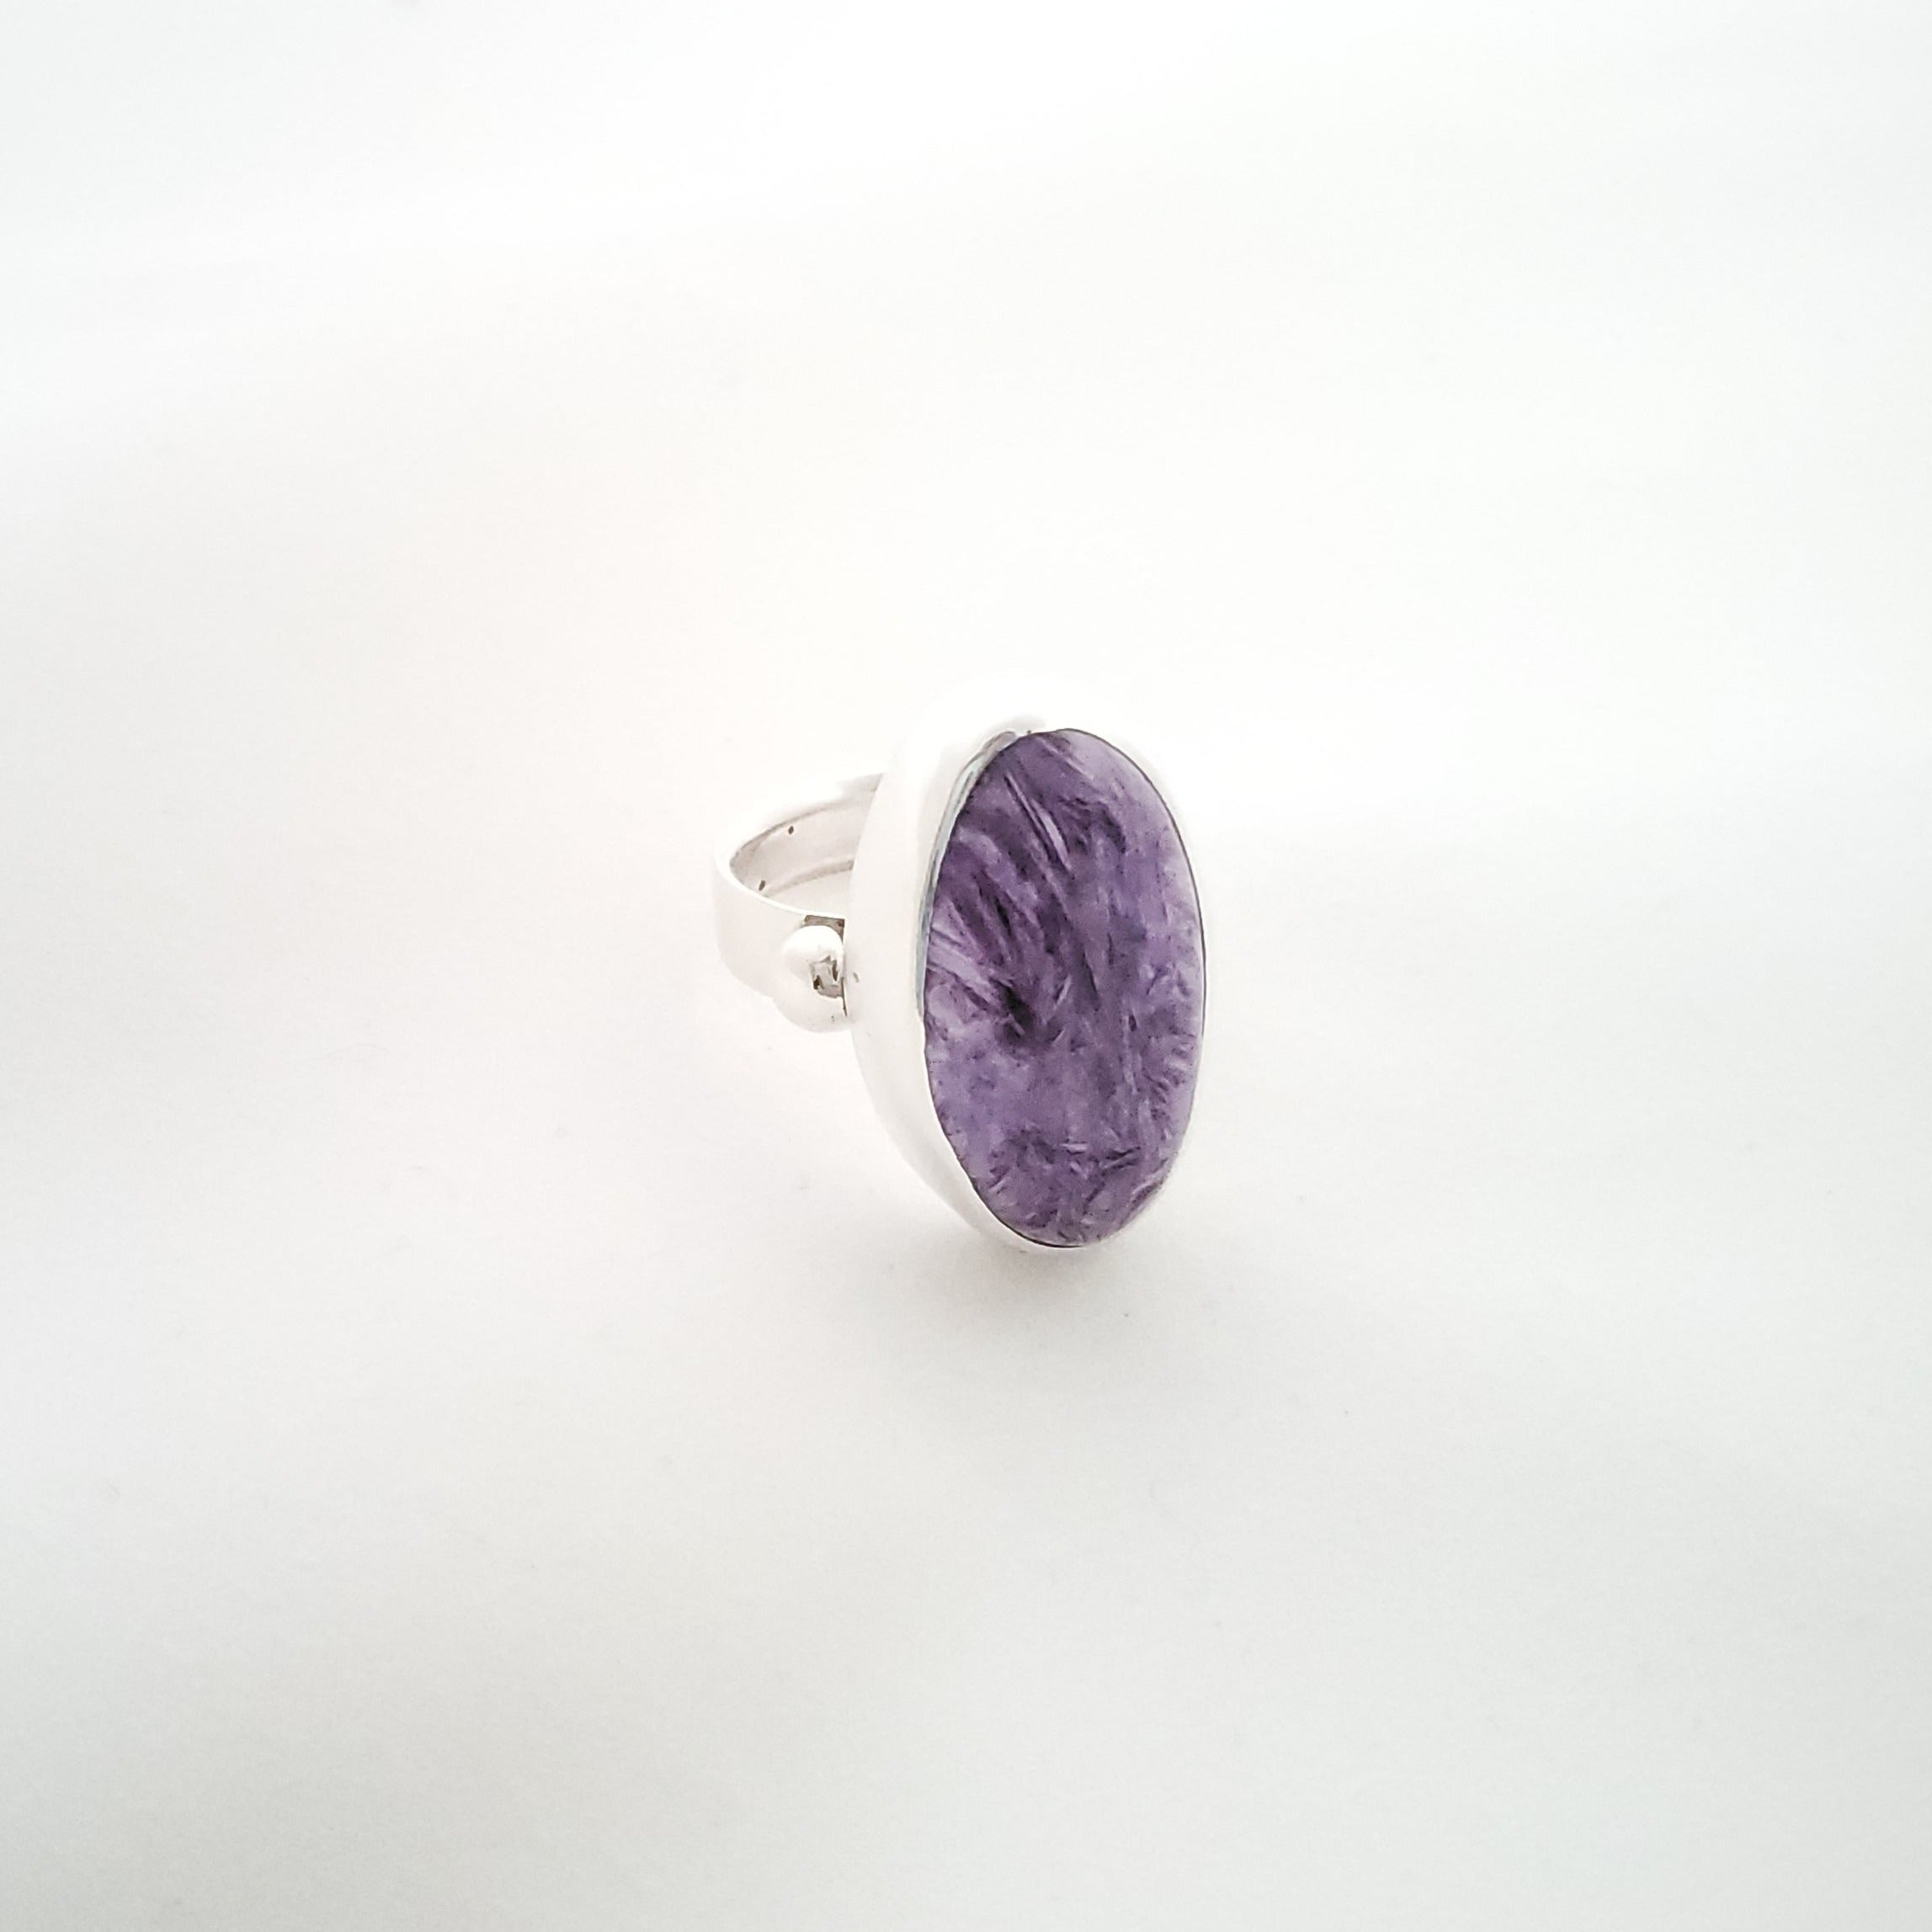 Purple large oval charoite ring shown at side angle